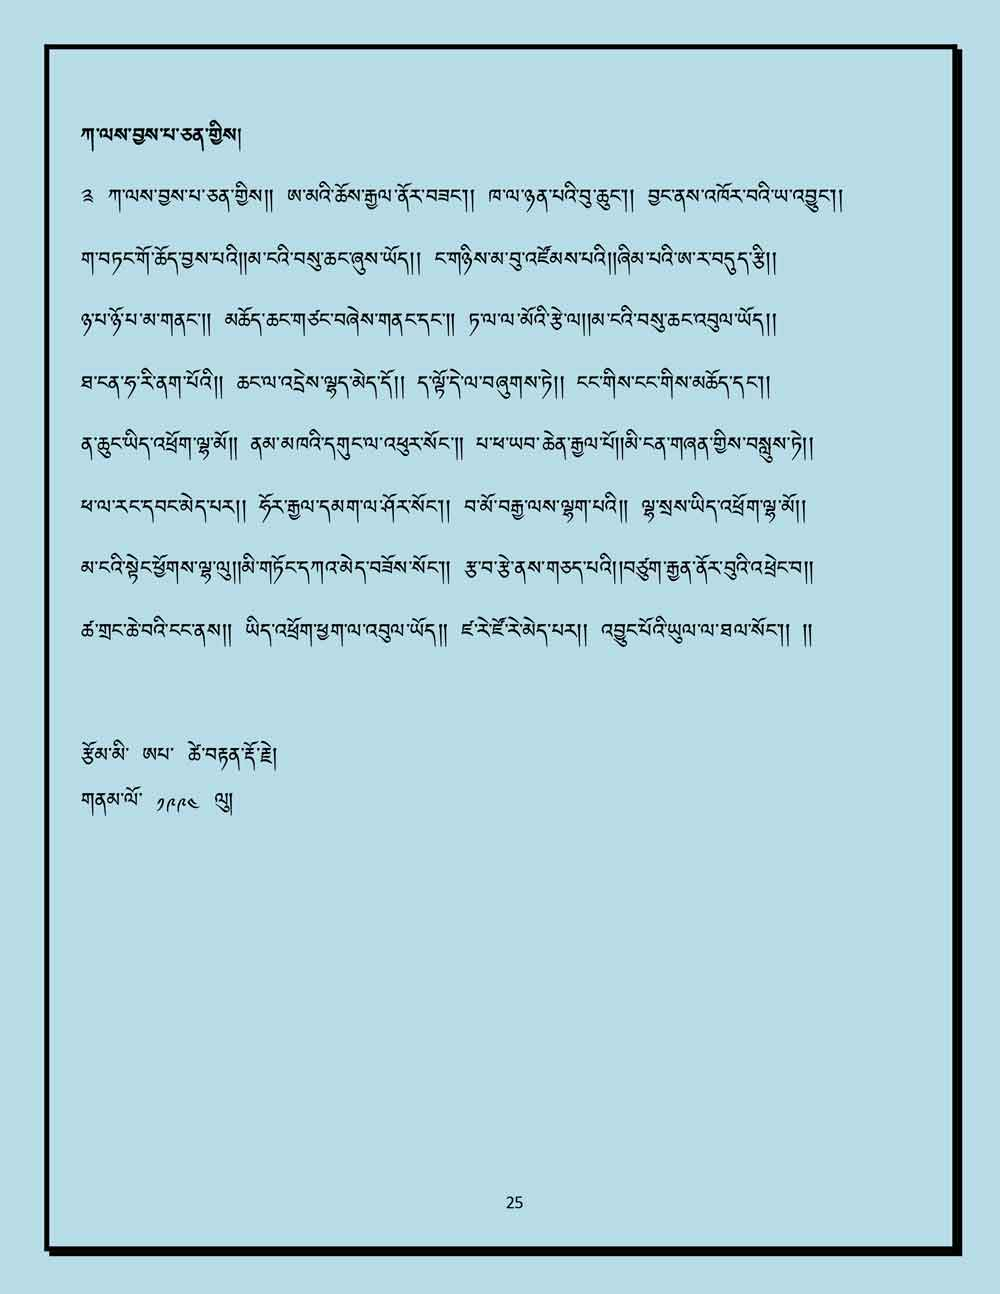 Ap-Tseten-Lyrics-25.jpg